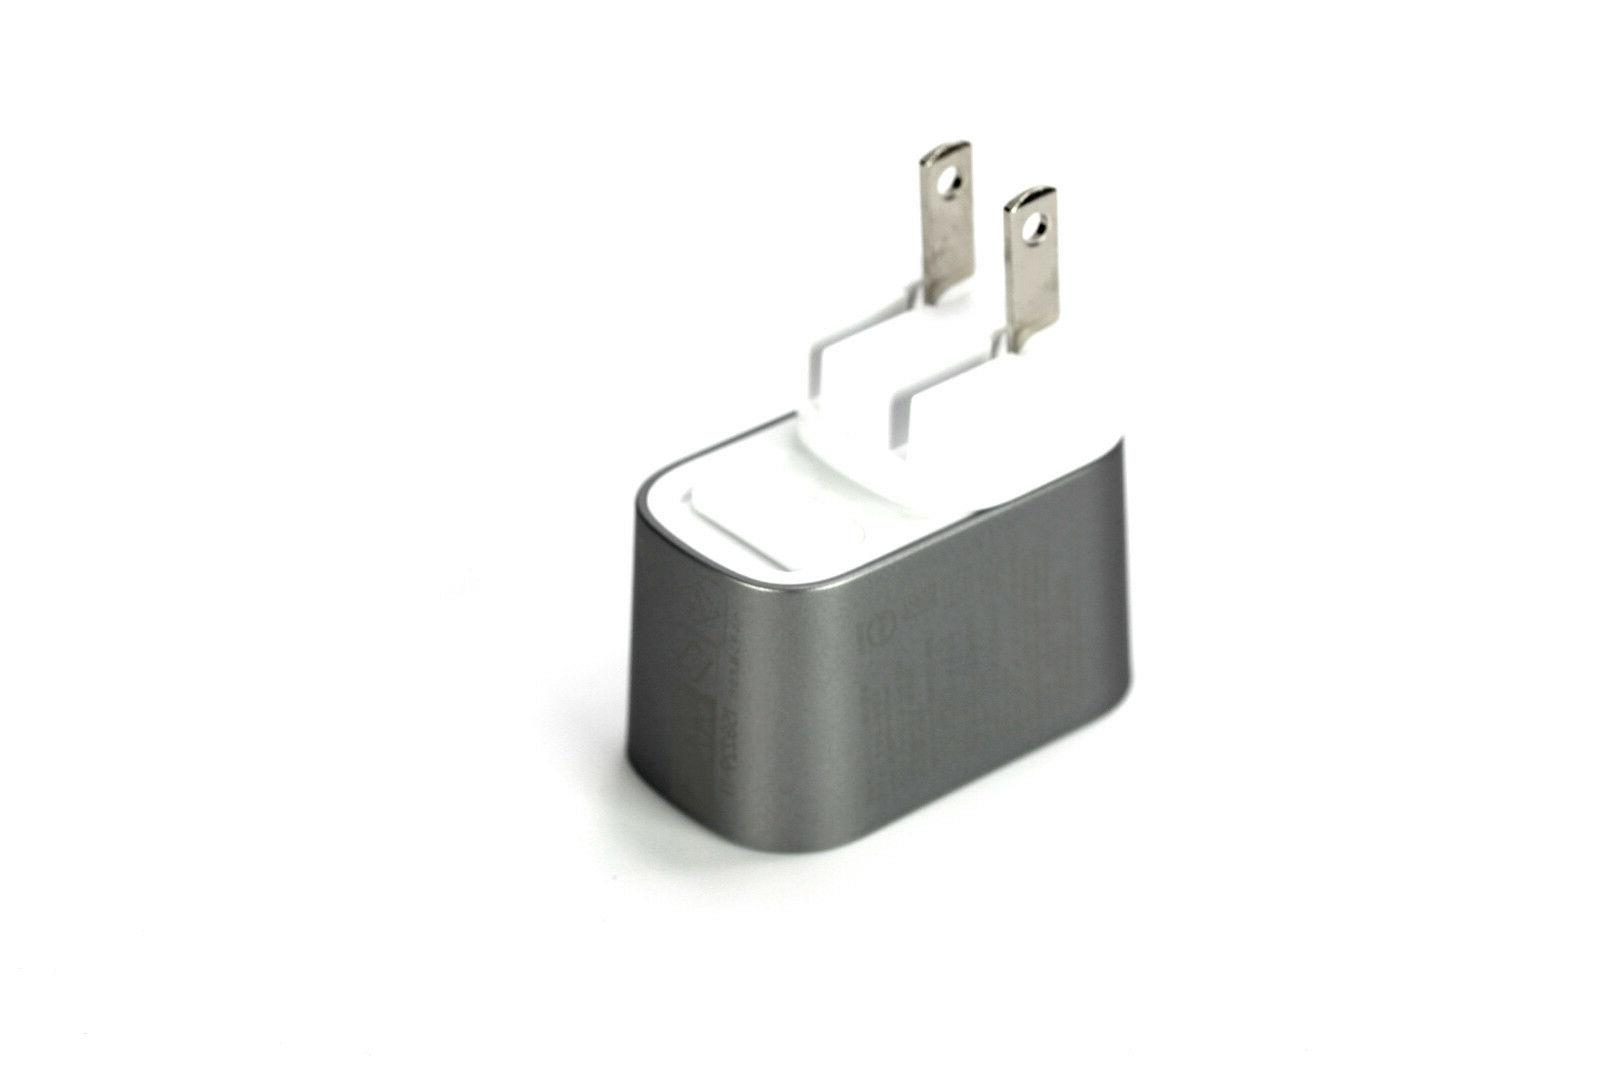 Belkin MIXIT Metallic Home/Wall For Apple Universal